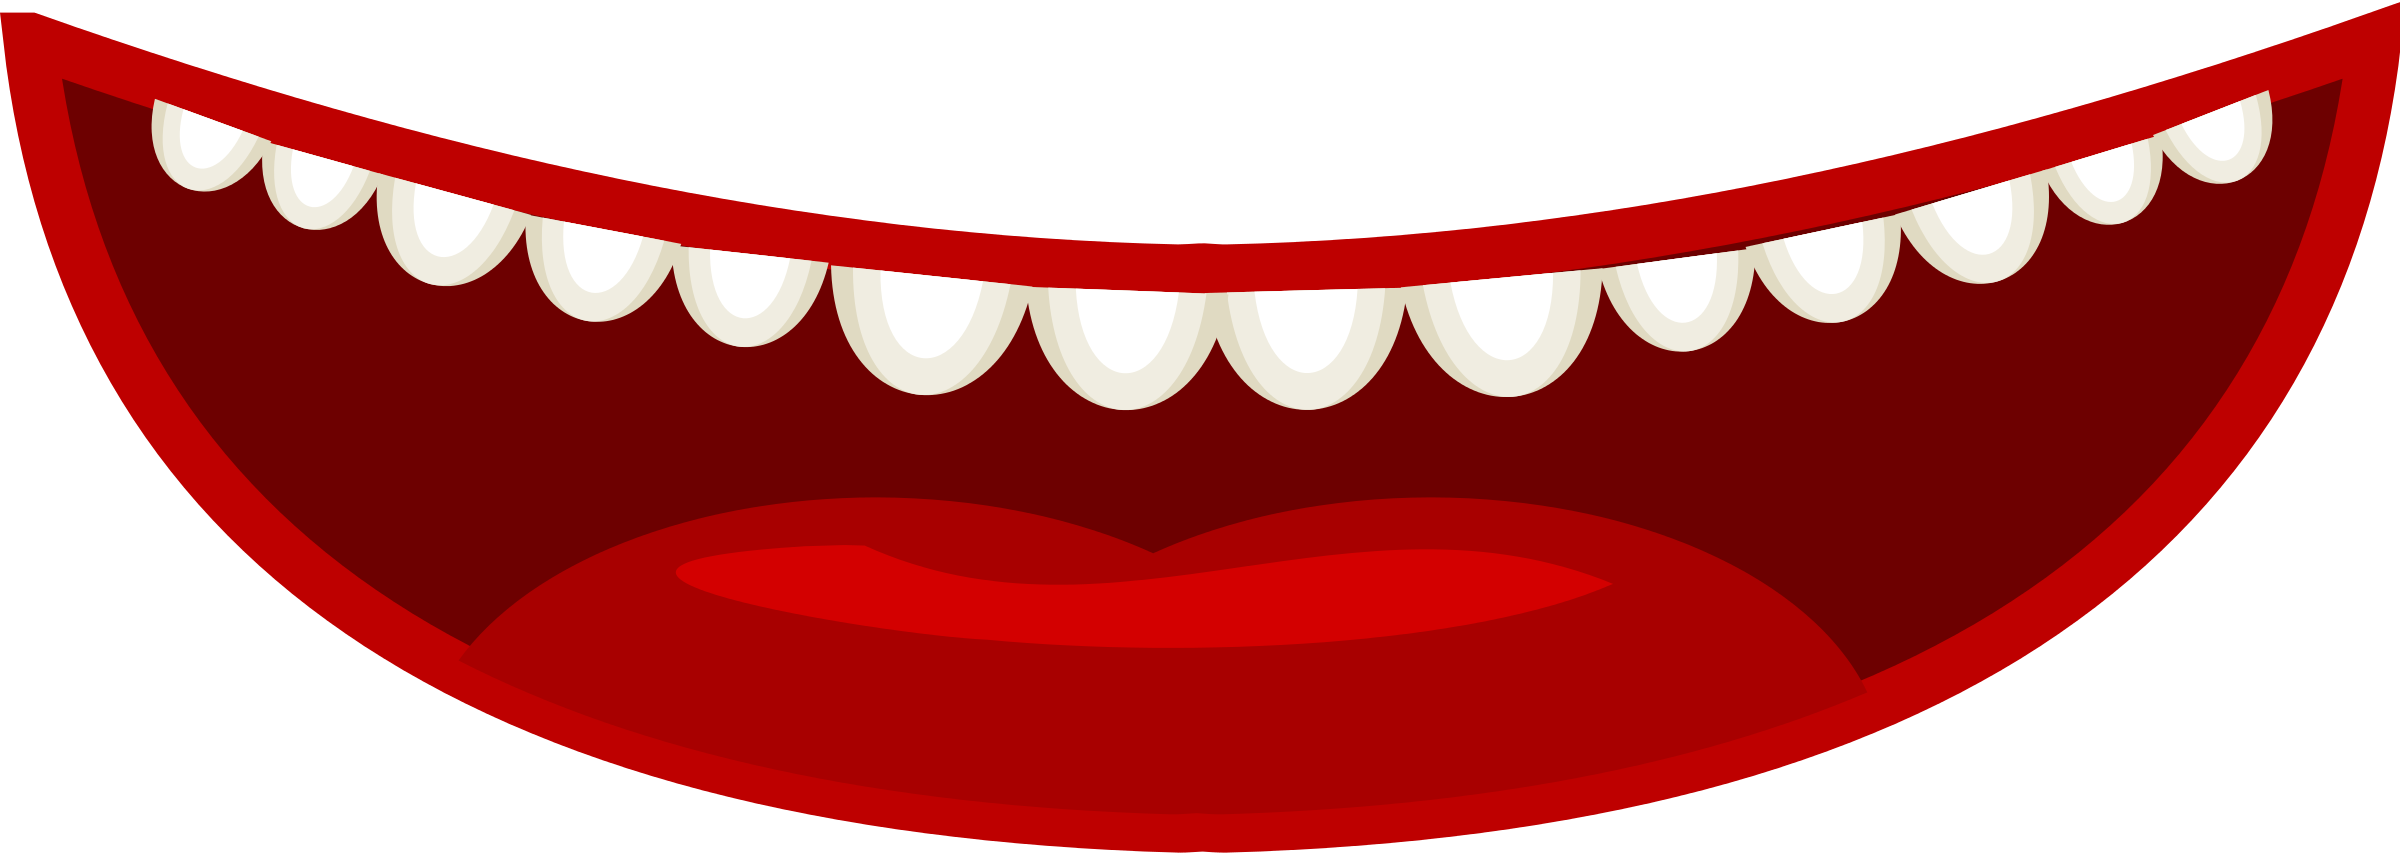 2400x853 Image Of Cartoon Smiley Mouth